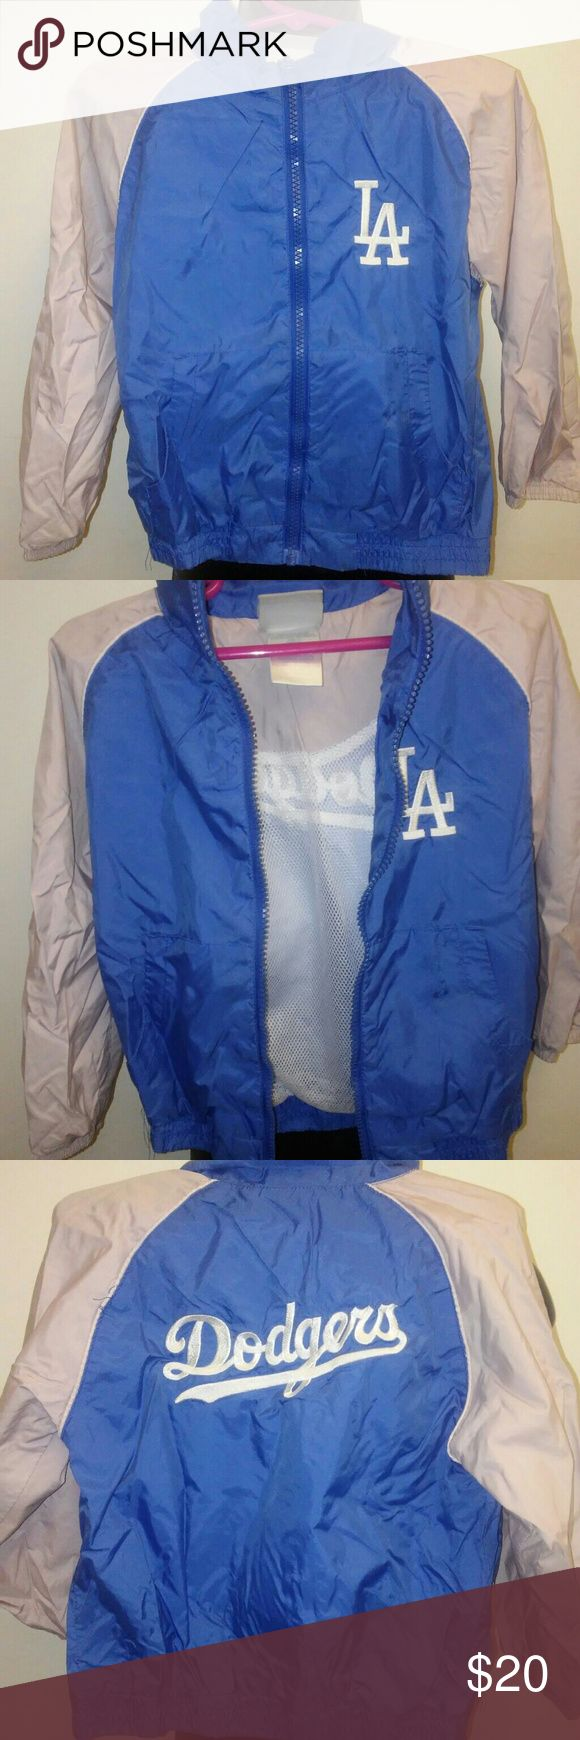 Dodgers Toddlers Windbreaker Jacket 3t pre-owned excellent condition tiny dirt mark barely noticable (see photo) Dodgers Jackets & Coats Blazers